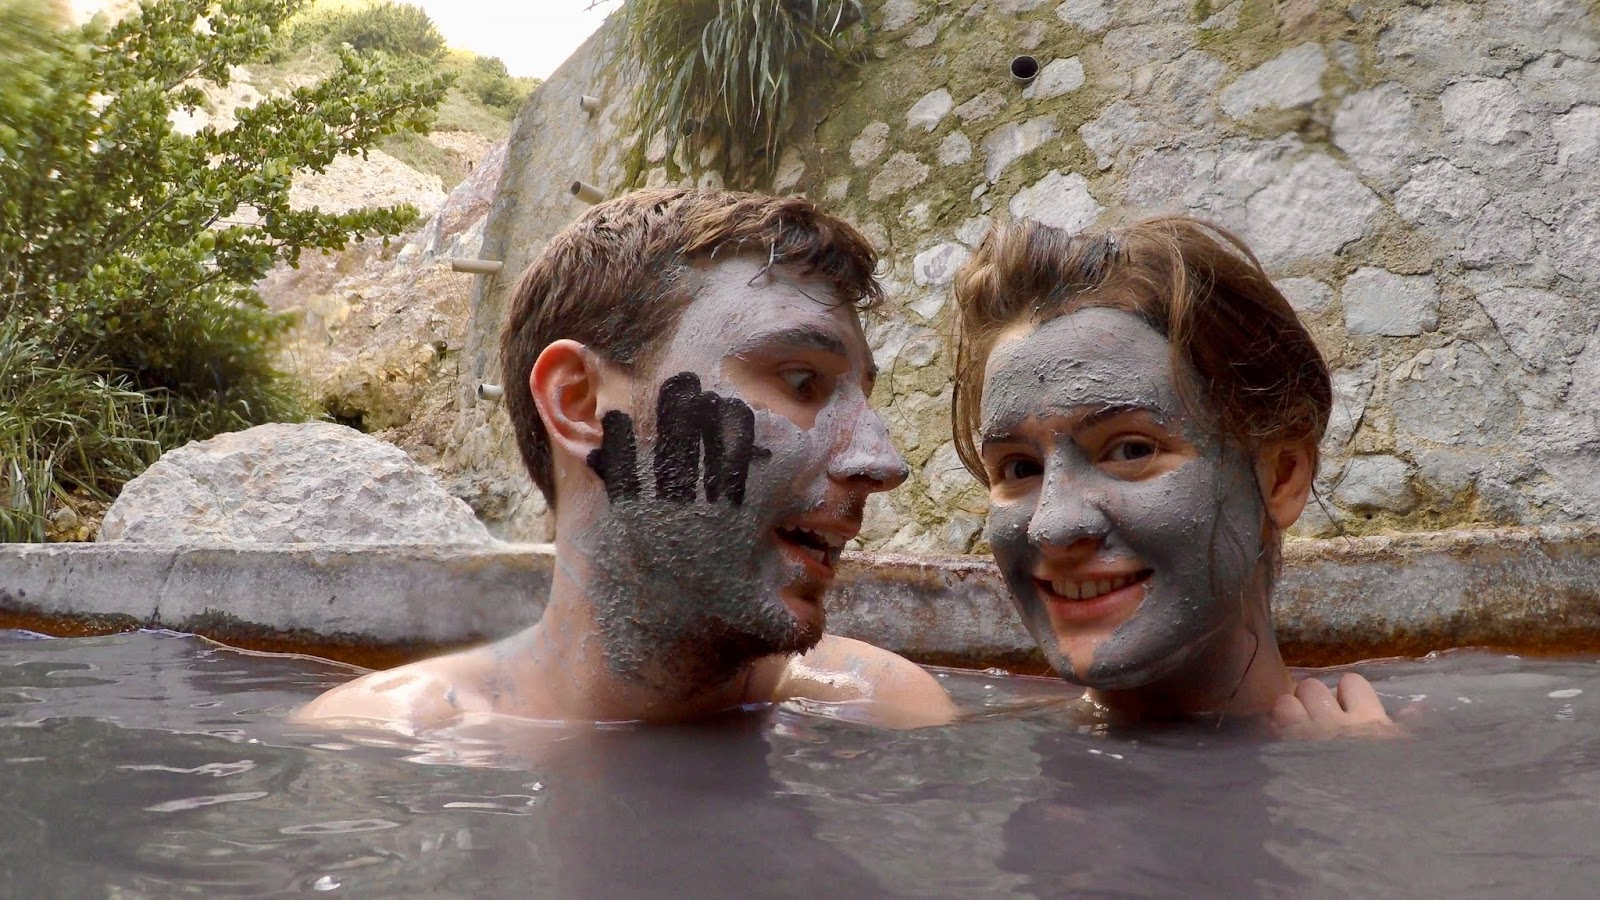 Mud baths in Soufrière, St Lucia by www.CalMcTravels.com